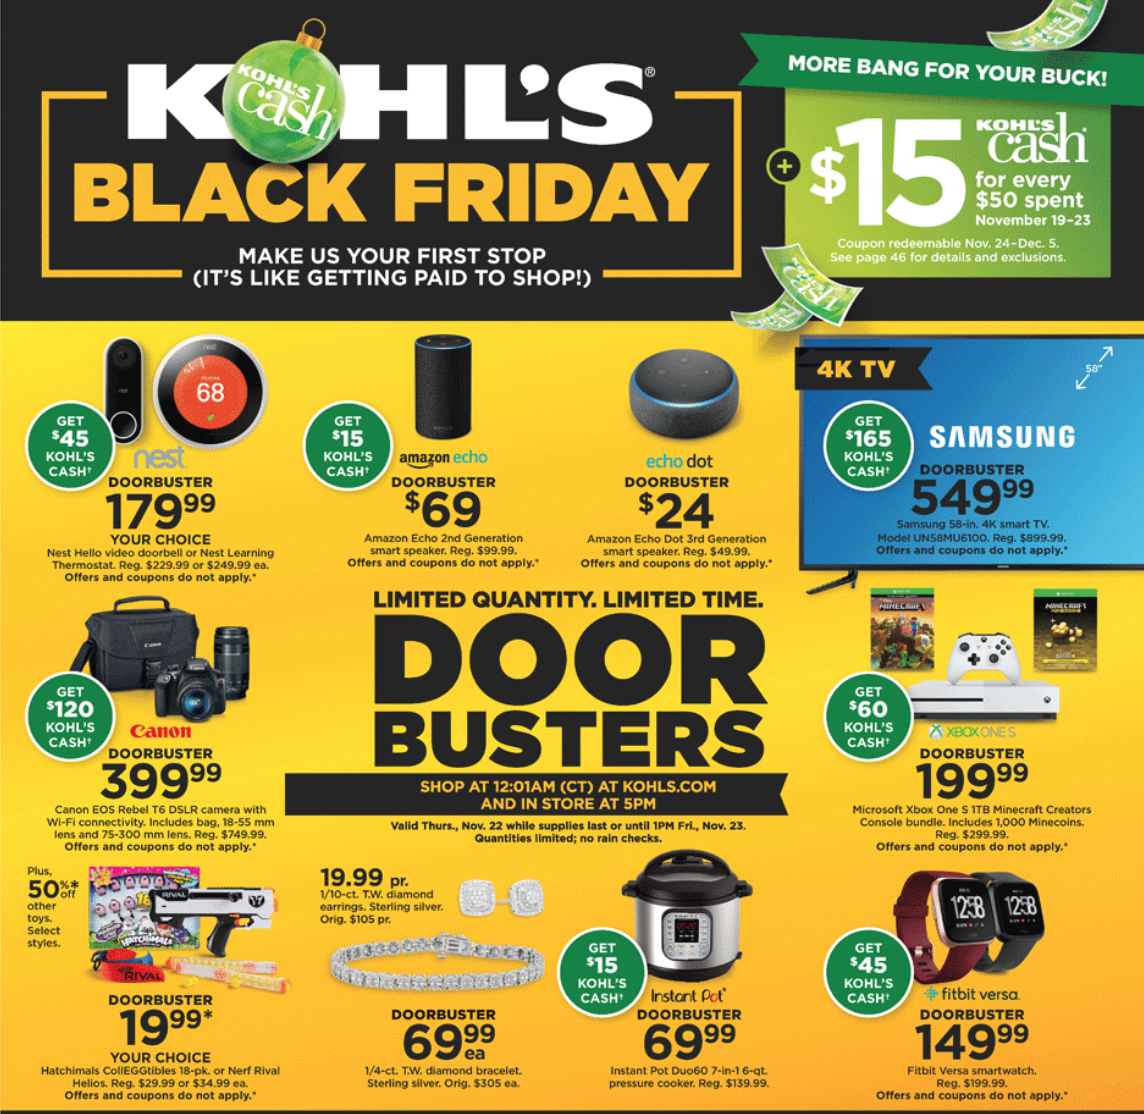 Kohls Black Friday Ad 2018 & Some Deals LIVE NOW ! Full Ad & Online shopping links!